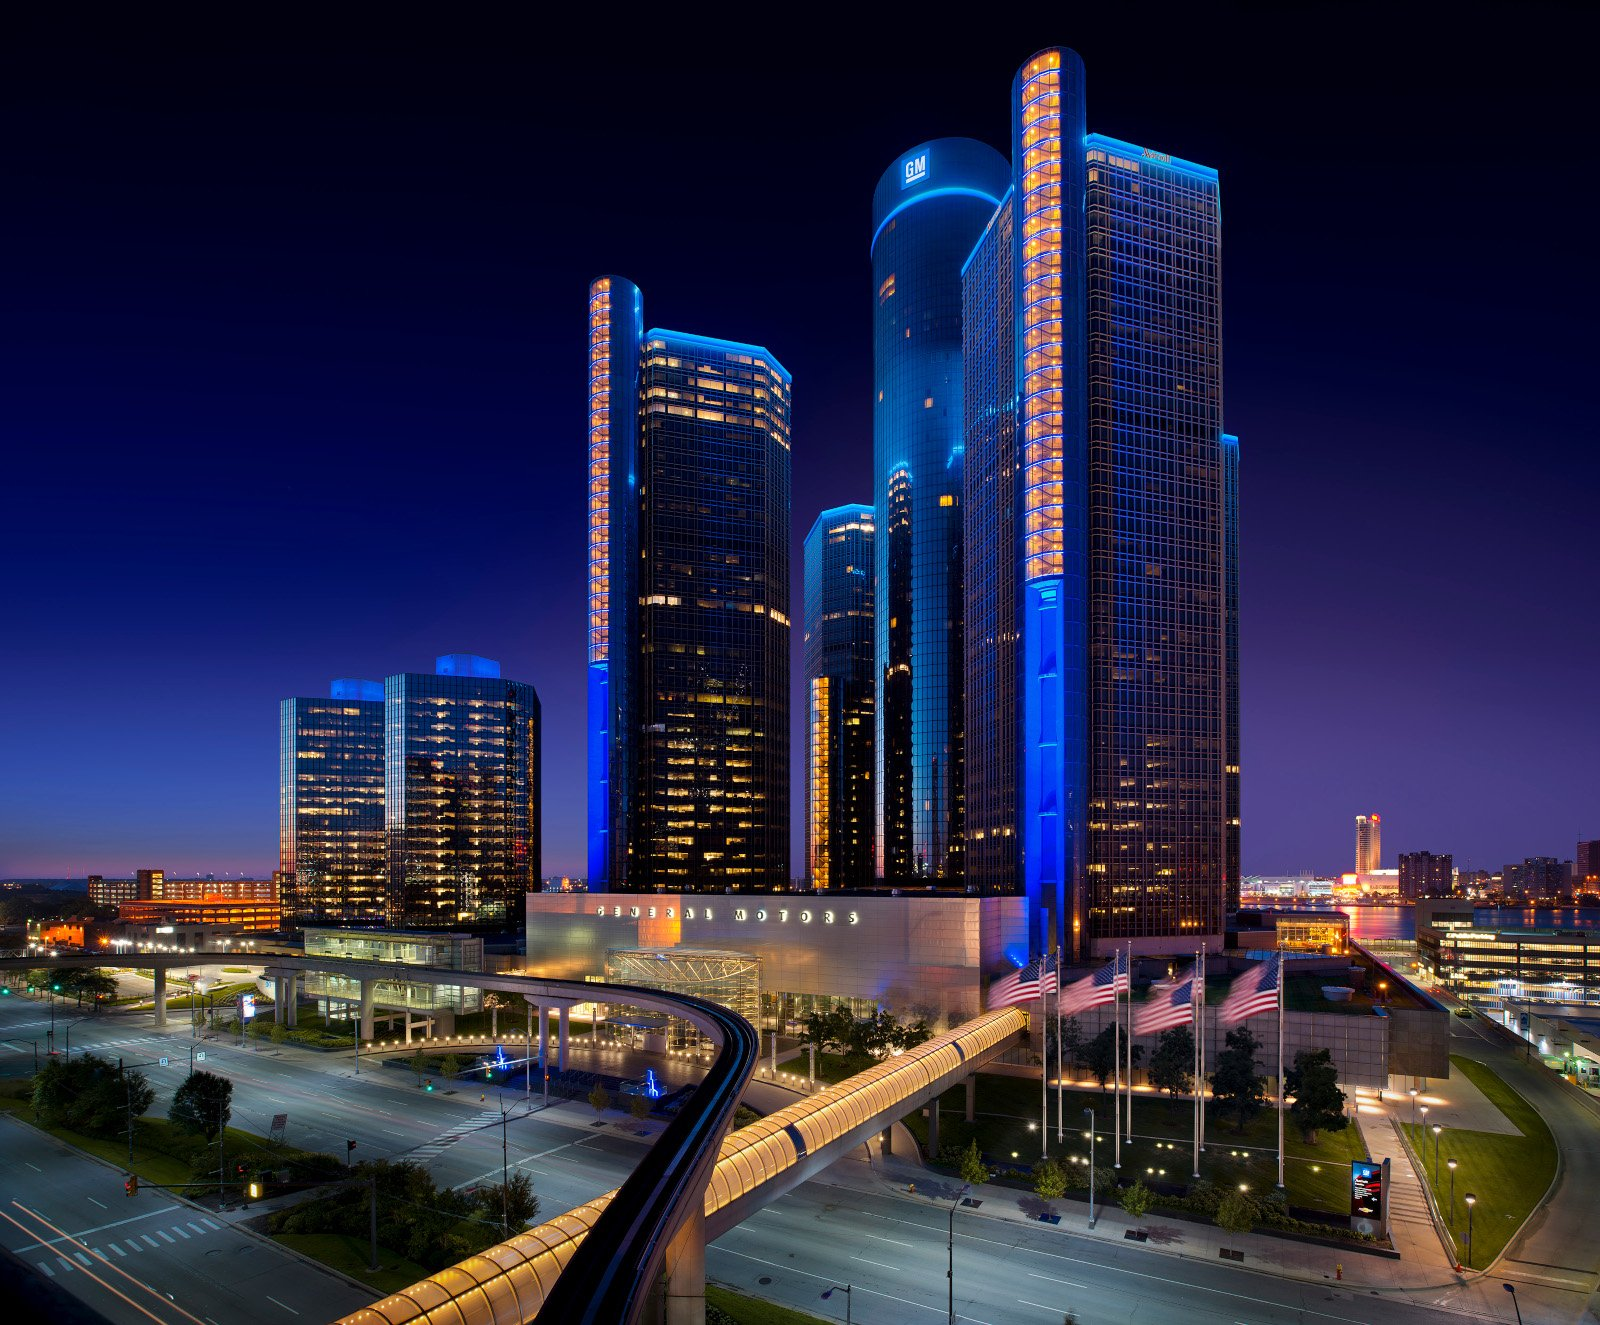 In 1996 General Motors acquired the Renaissance Center to house